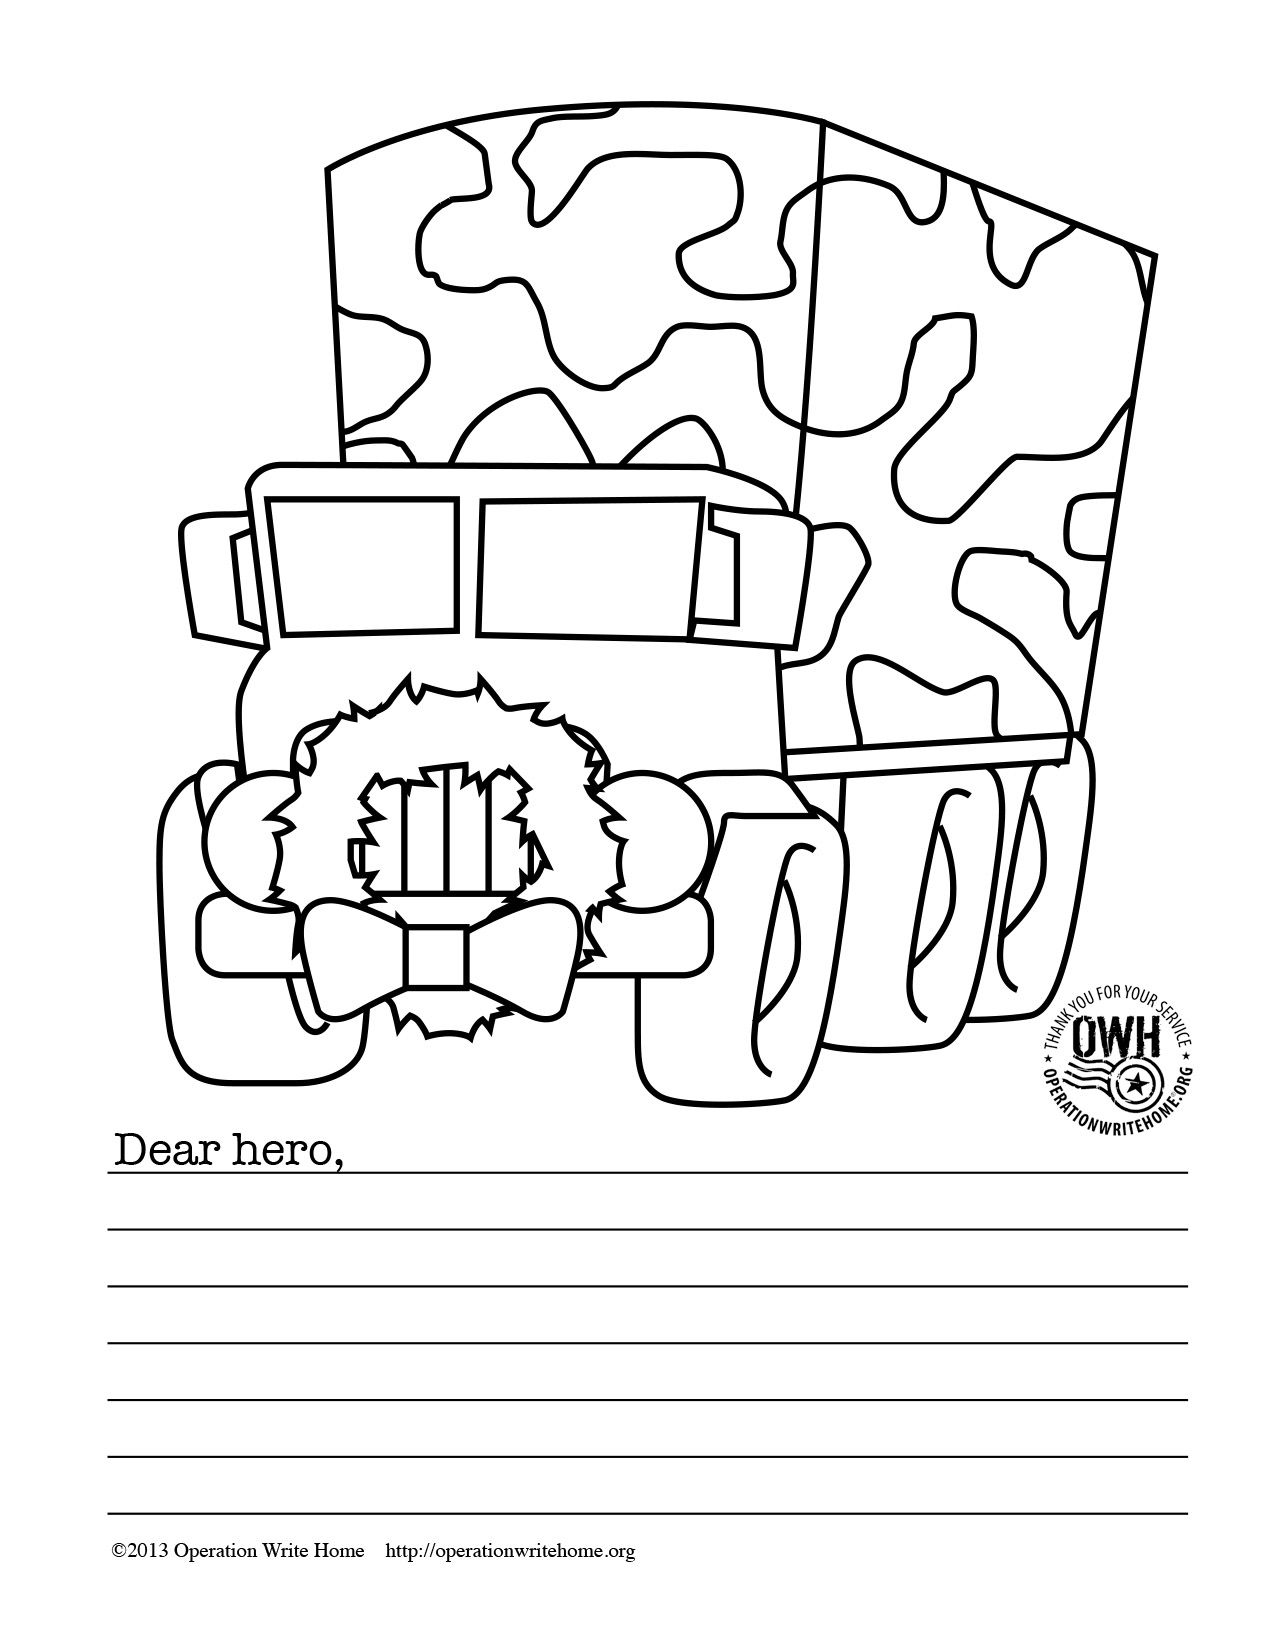 Coloring Pages Operation Write Home Christmas Coloring Pages Designs Coloring Books Coloring Pages